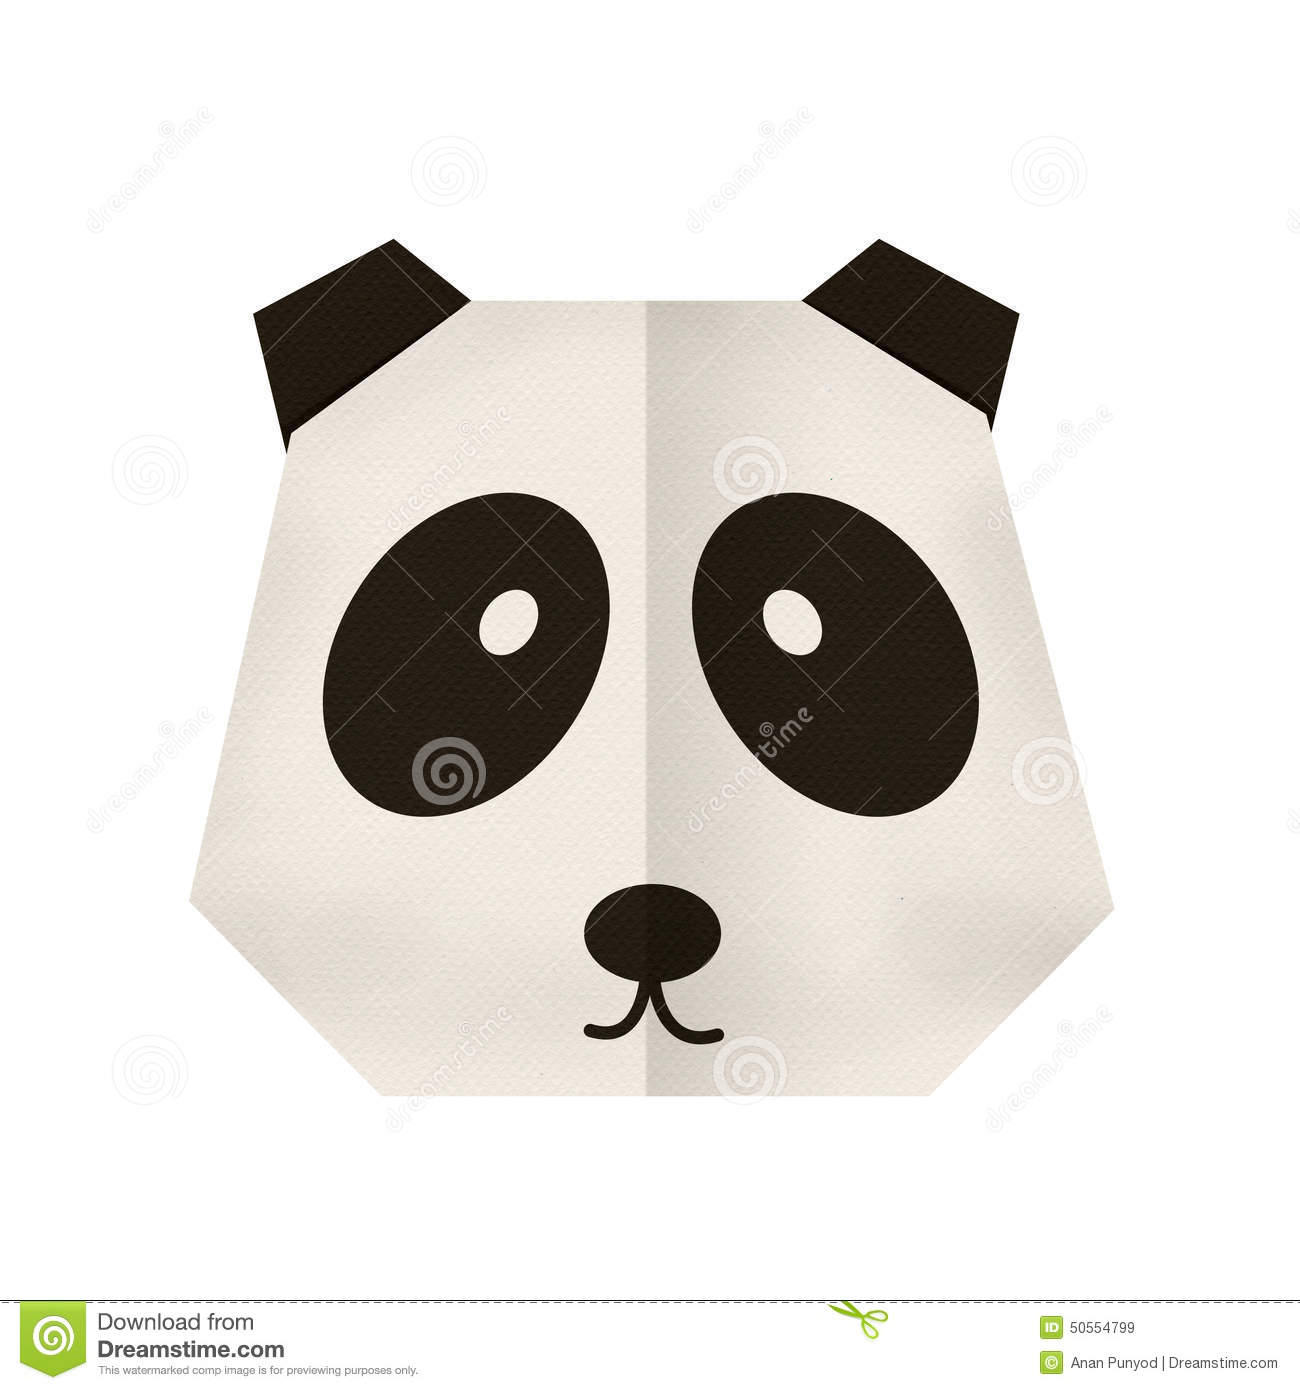 Origami Paper A Panda Face Stock Image